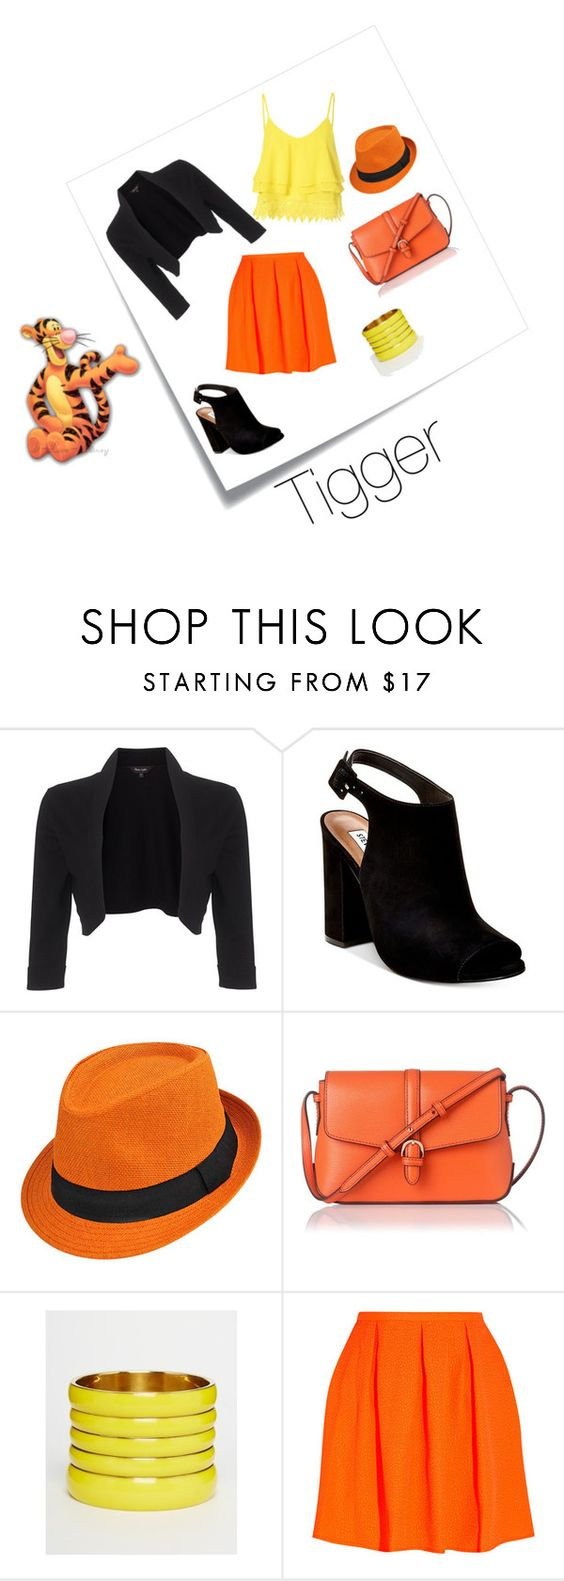 """Tigger"" by adisneygirlme on Polyvore featuring Disney, Post-It, Phase Eight, Steve Madden, L.K.Bennett, ASOS, Opening Ceremony and Glamorous"